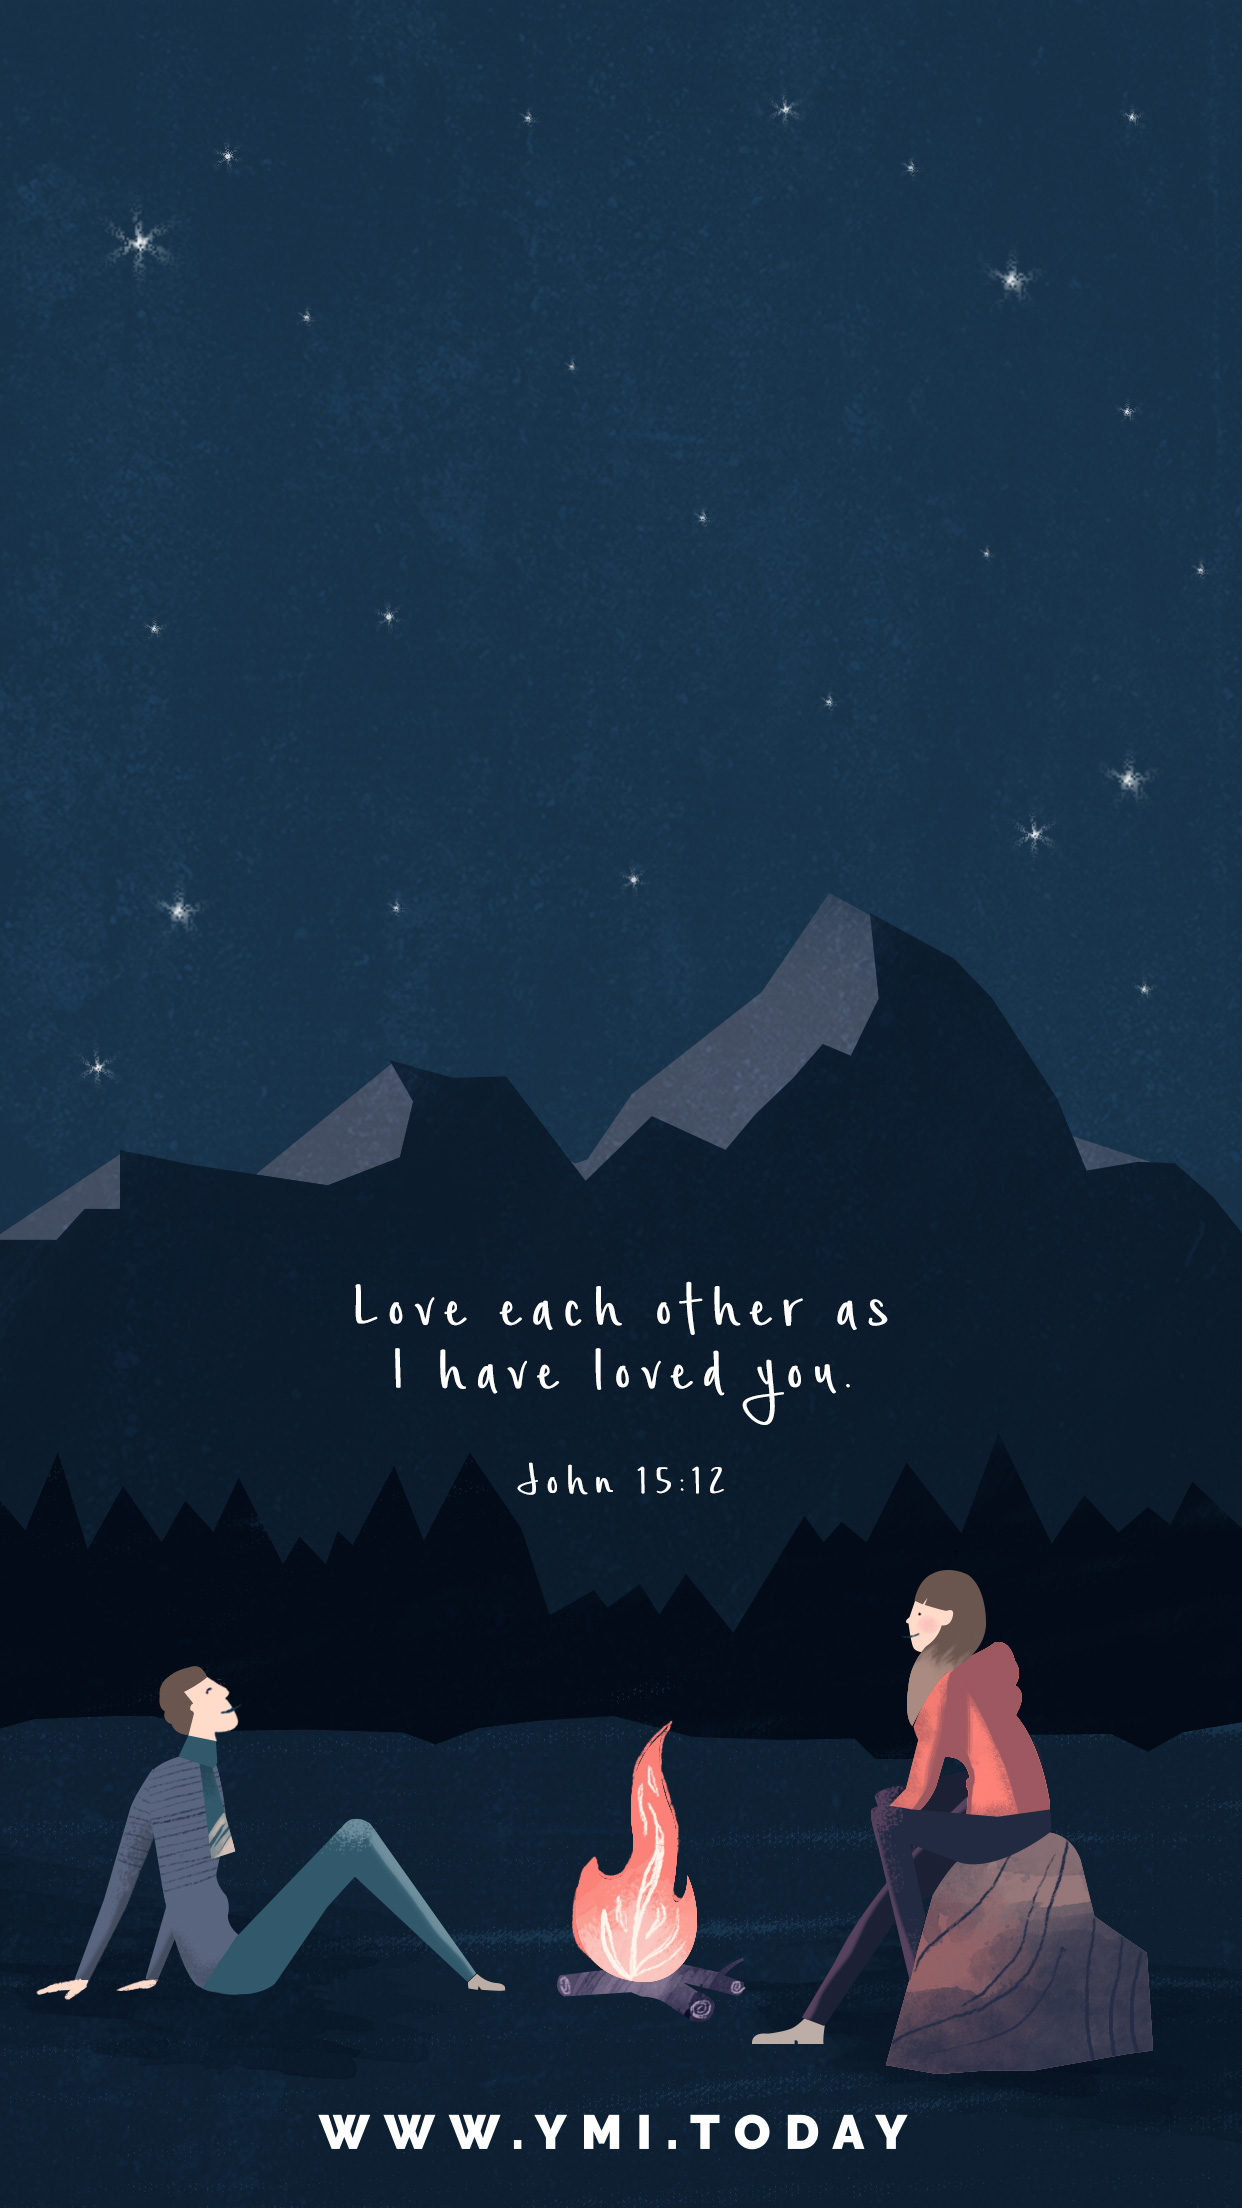 YMI January 2018 Phone Lockscreen - Love each other as I have loved you. - John 15:12